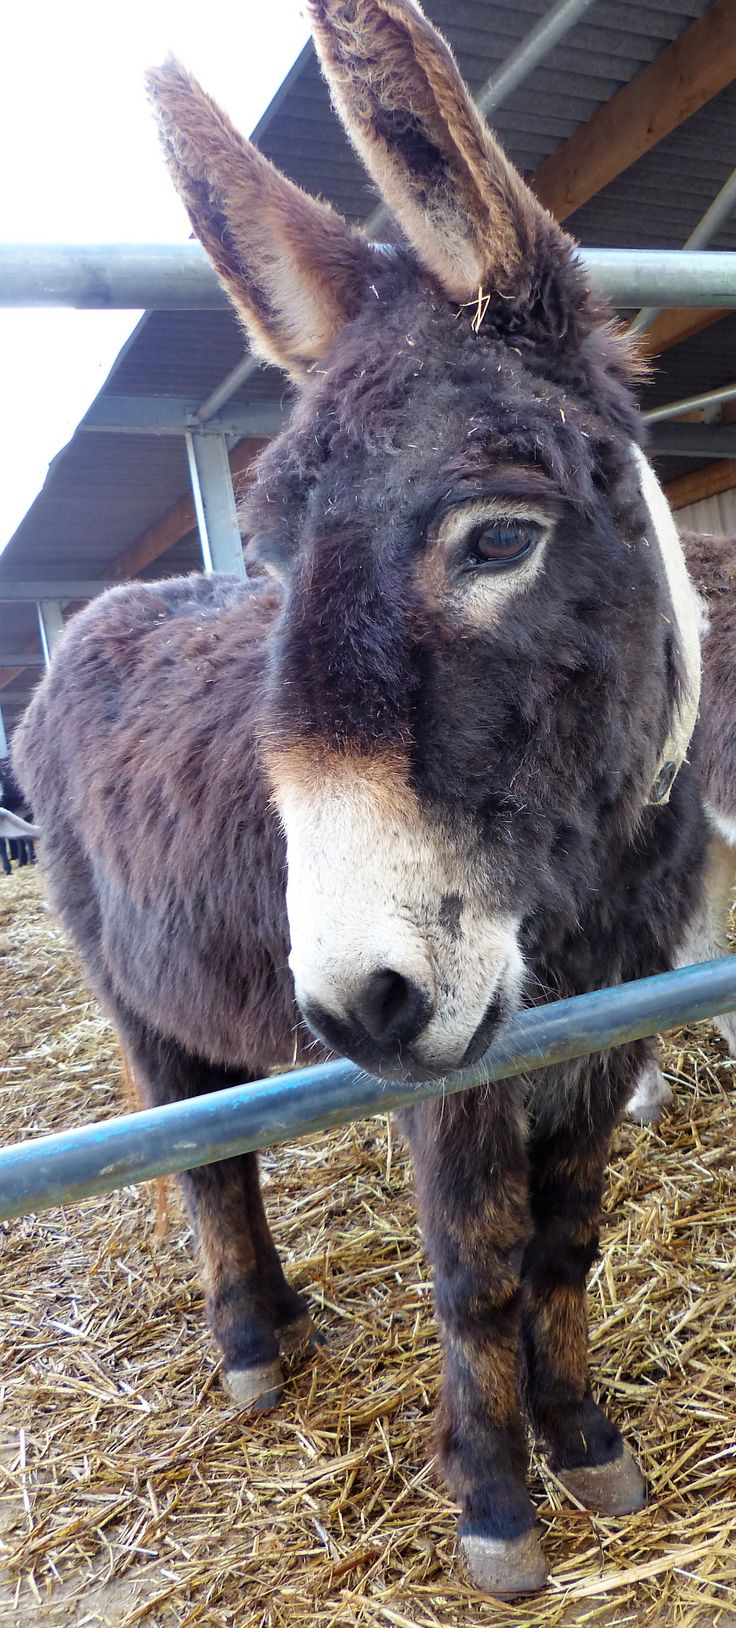 The sweetest delight - Chocolate! @islandfarmdonks. You can adopt Chocolate @ http://www.donkeyrescue.co.uk/adopt-chocolate/